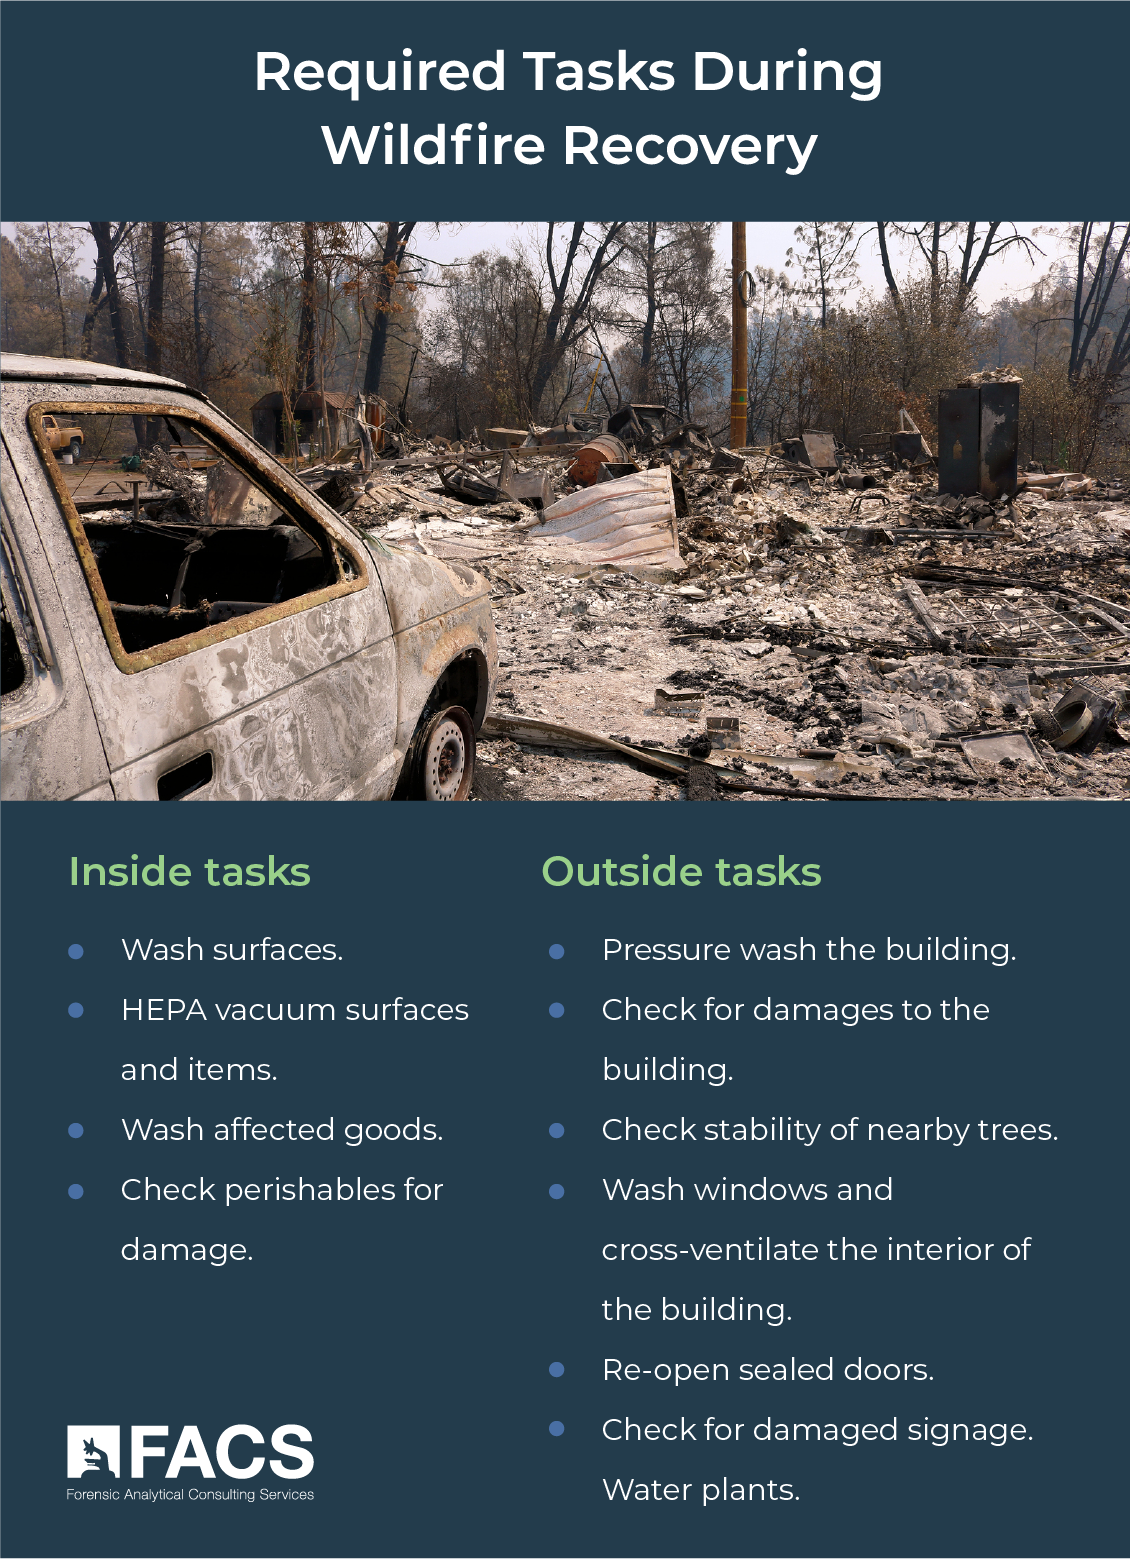 Required Tasks During Wildfire Recovery